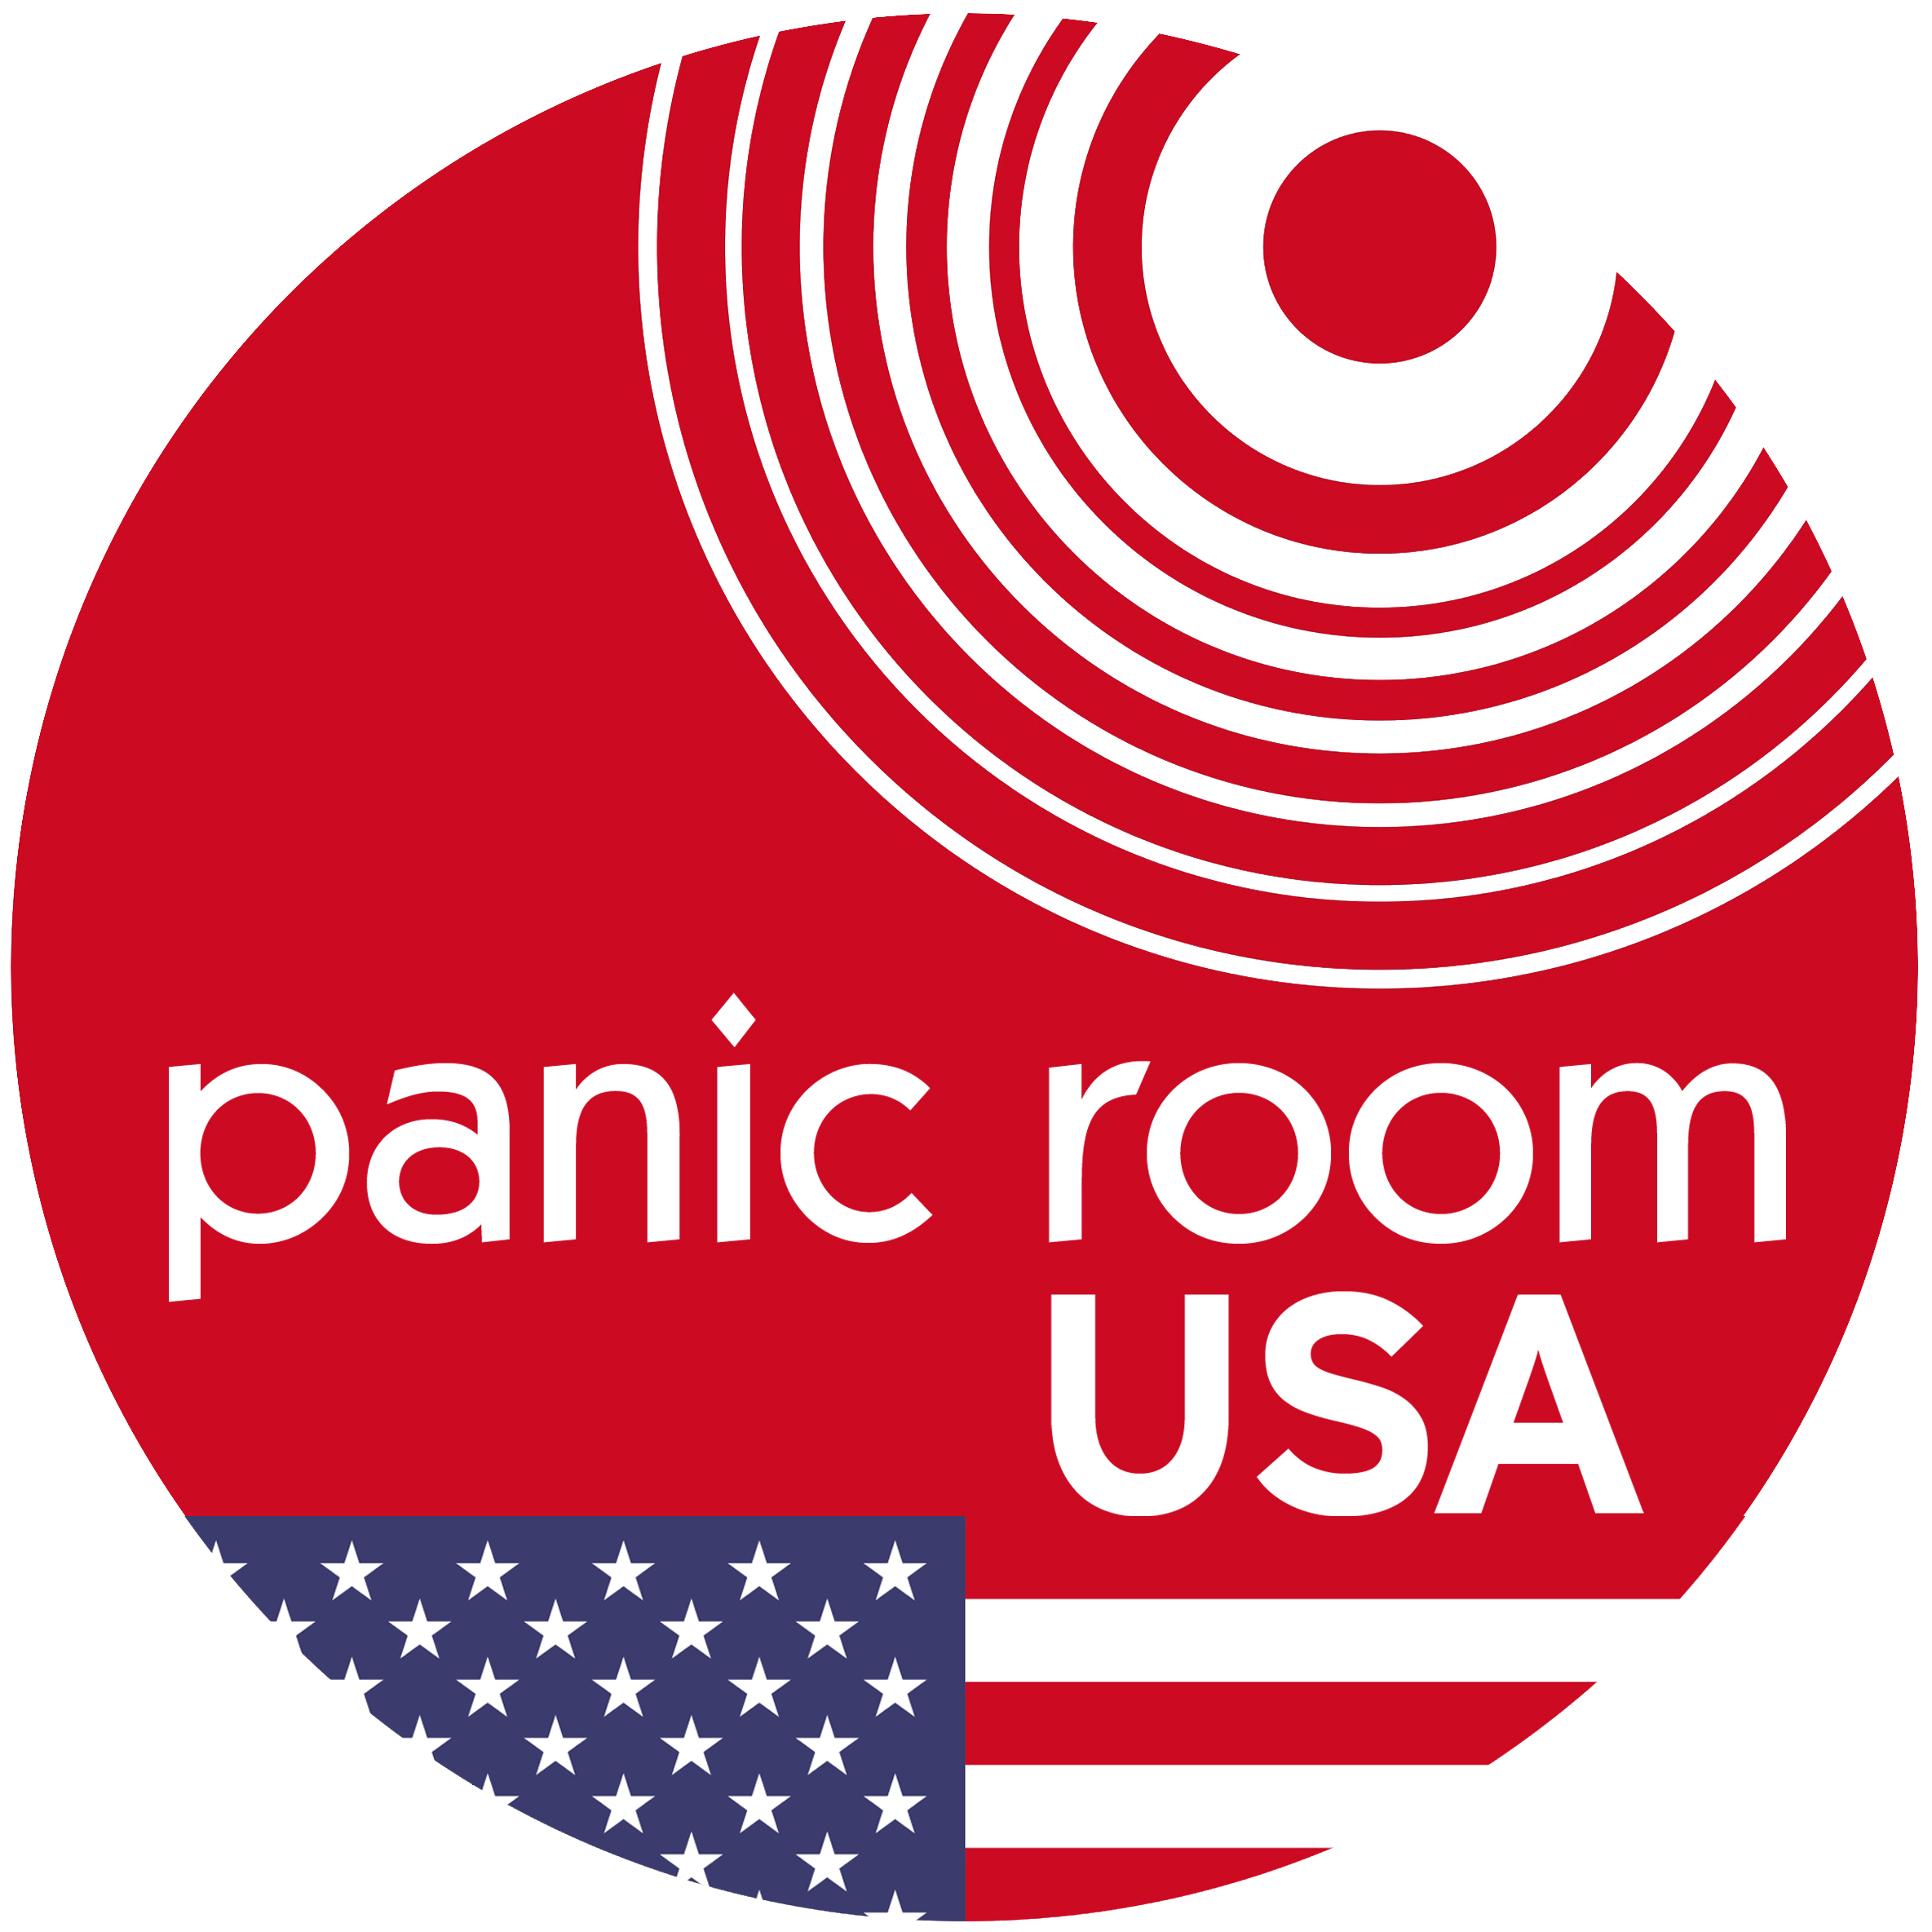 Introducing Panic Room USA